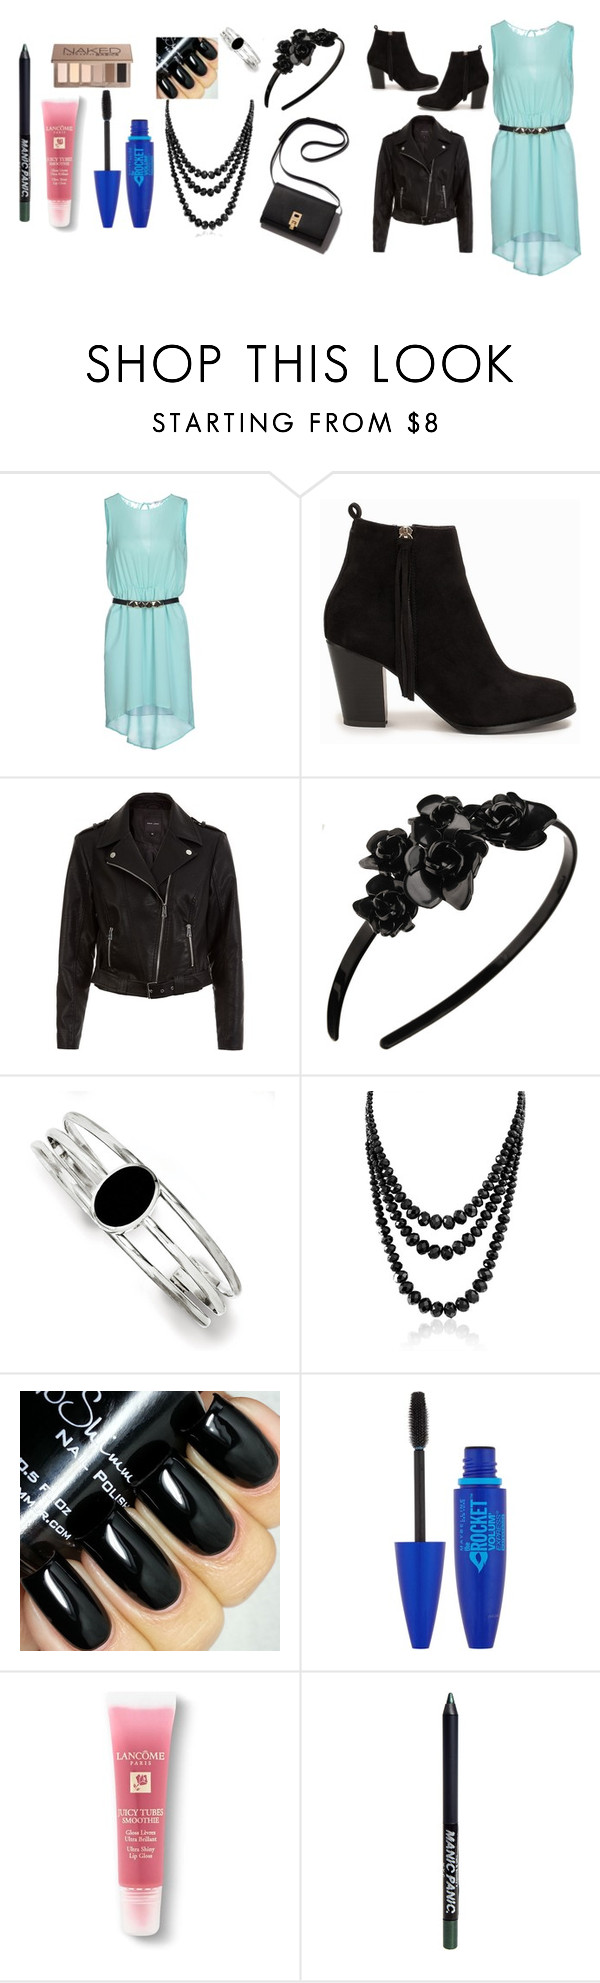 """""""Cute outfit"""" by ilovemykitty123 ❤ liked on Polyvore featuring Relish, Nly Shoes, L. Erickson, Kevin Jewelers, Bling Jewelry, Maybelline, Lancôme, Manic Panic, Urban Decay and women's clothing"""